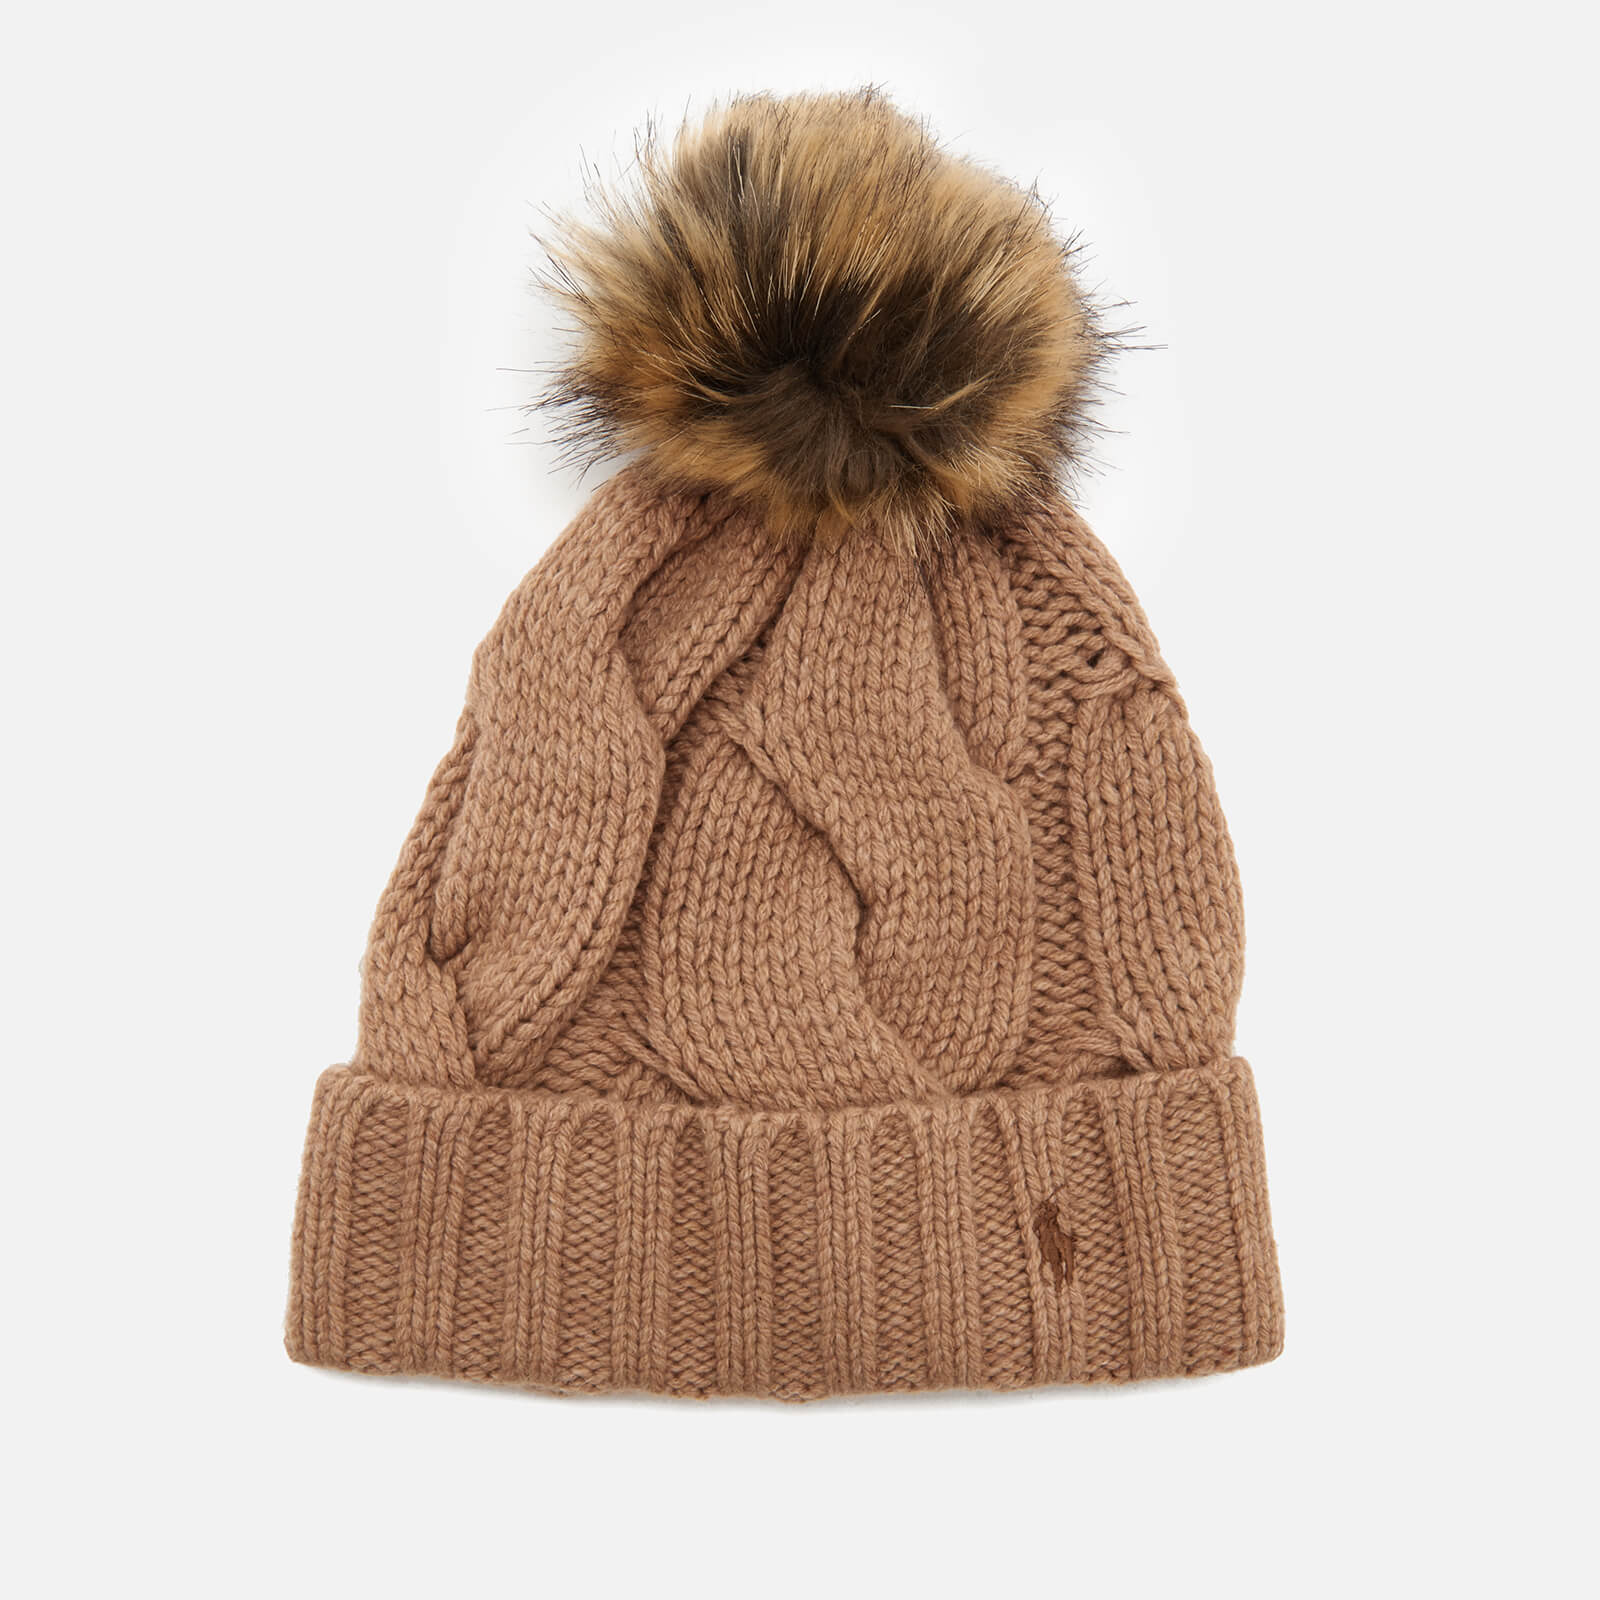 3f3afcae2c66e Polo Ralph Lauren Women s Rope Hat - Camel - Free UK Delivery over £50